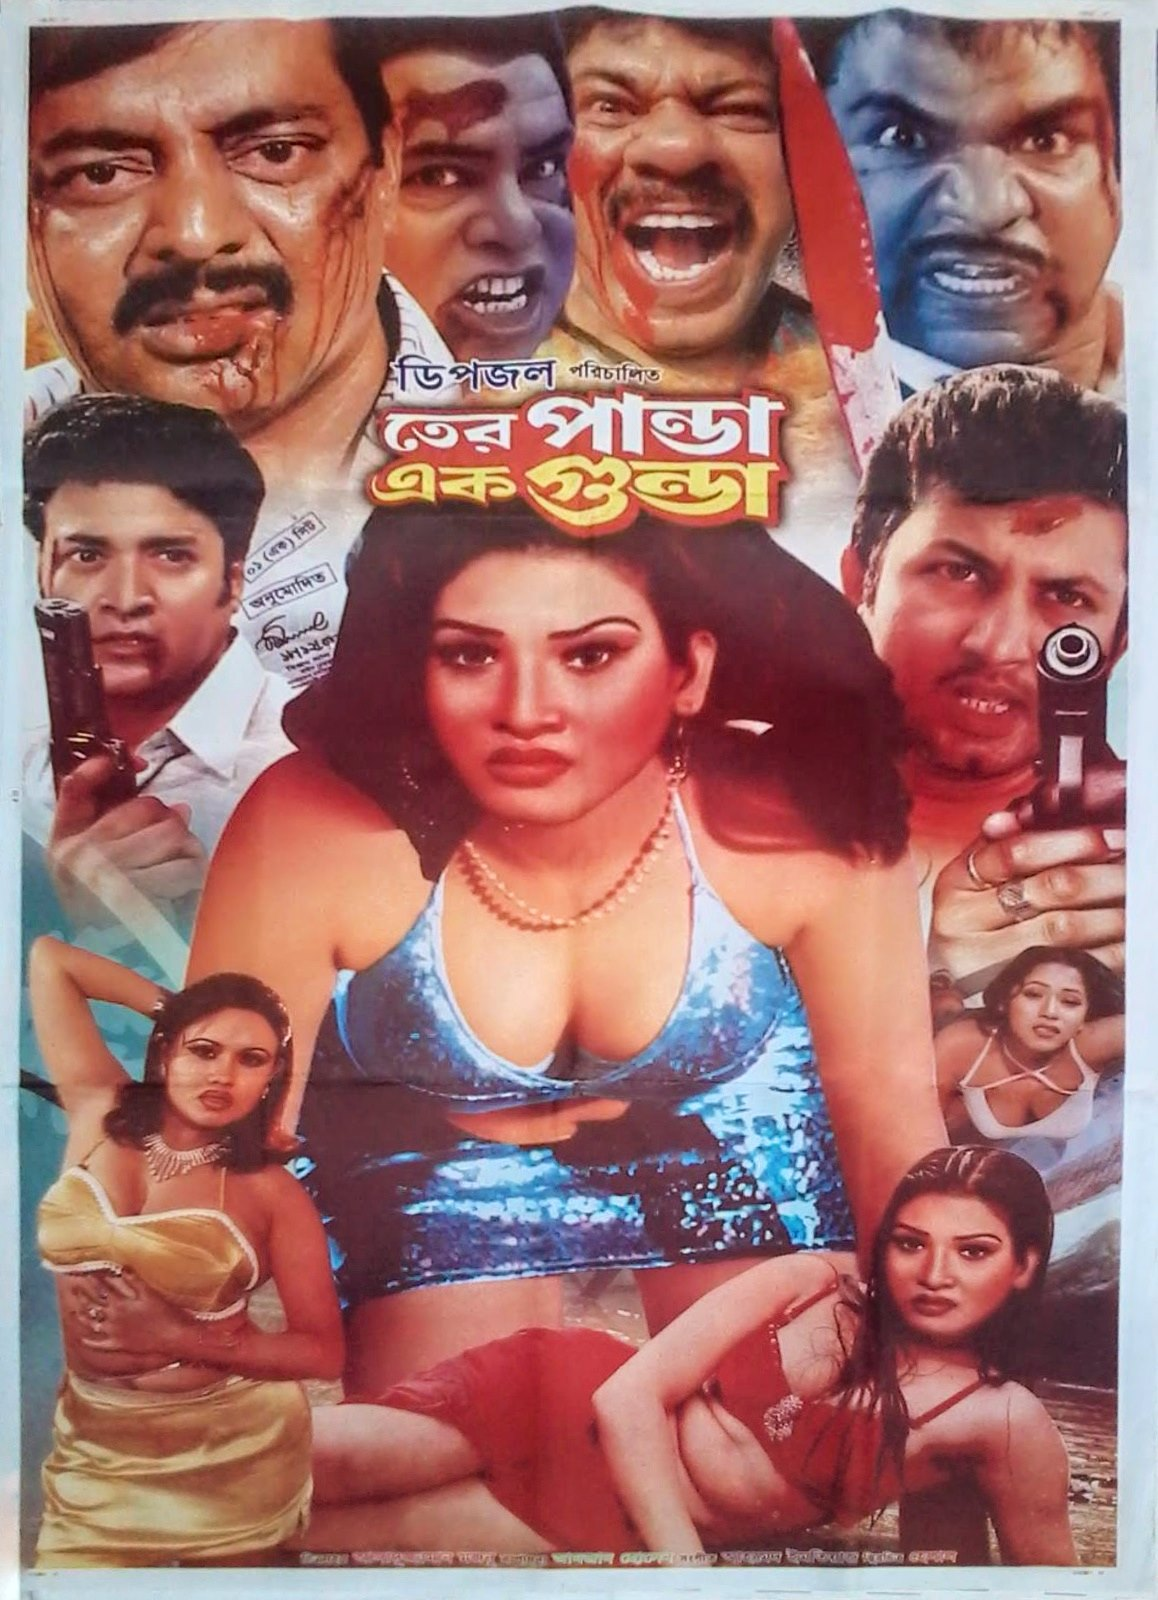 18+ Tero Panda Ek Gunda 2021 Bangla Movie HDRip – 720p 480p – 1GB 640MB – Download